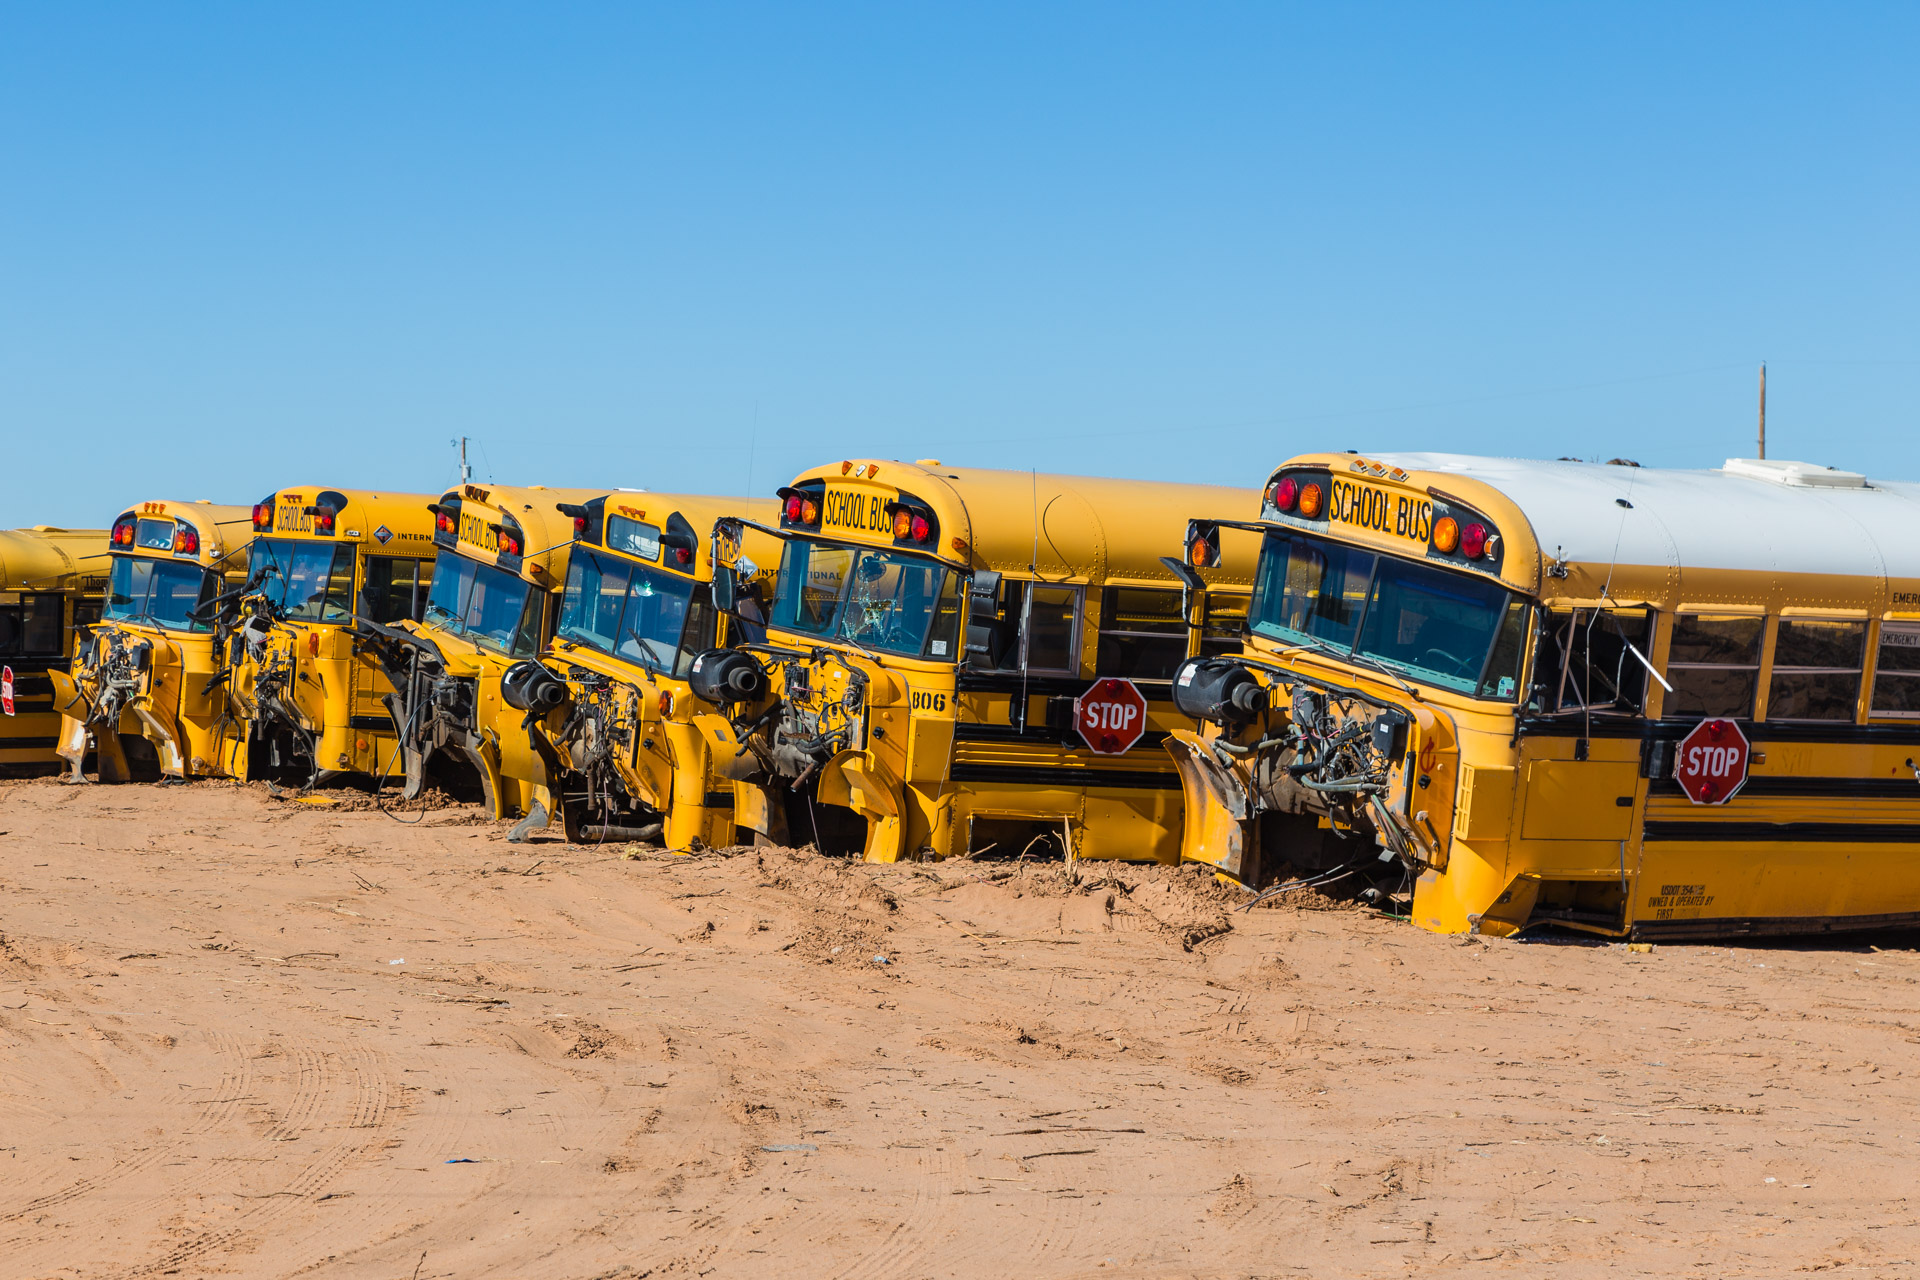 Cloudcroft, New Mexico - School Bus Graveyard